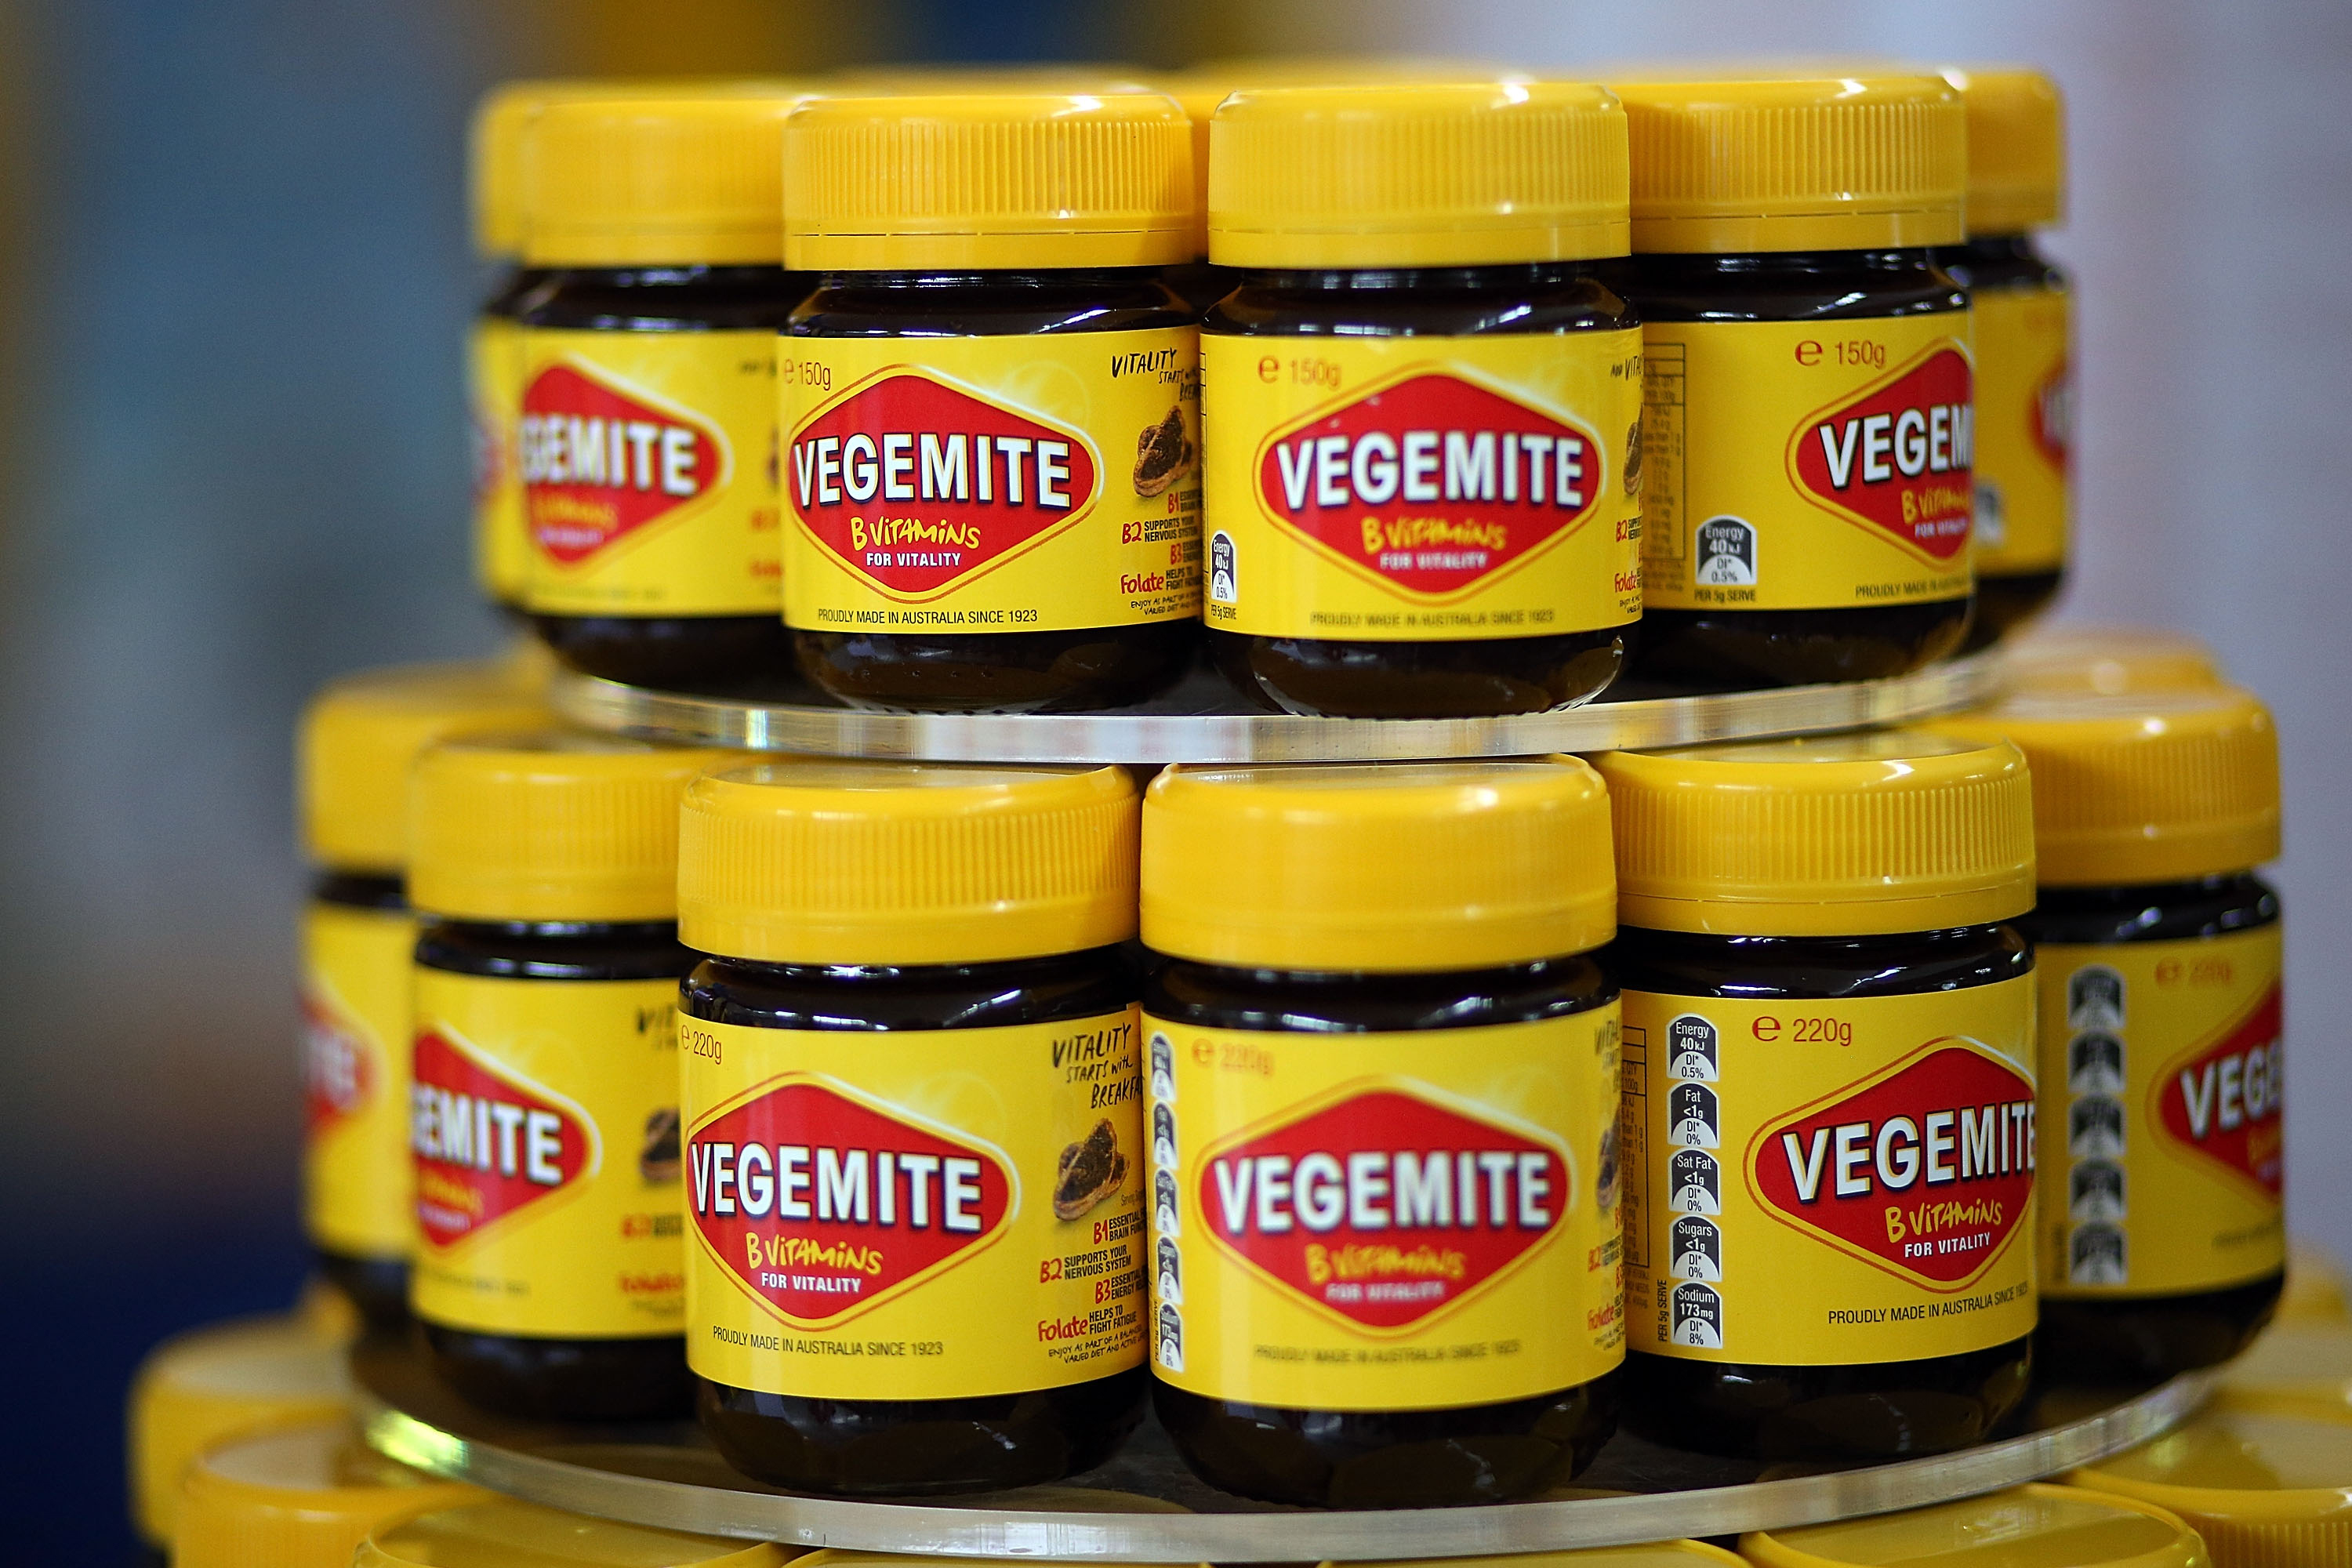 Jars of Vegemite are seen during a press call to celebrate the Vegemite brand's 90th year at the Vegemite factory in Melbourne on Oct. 24, 2013.